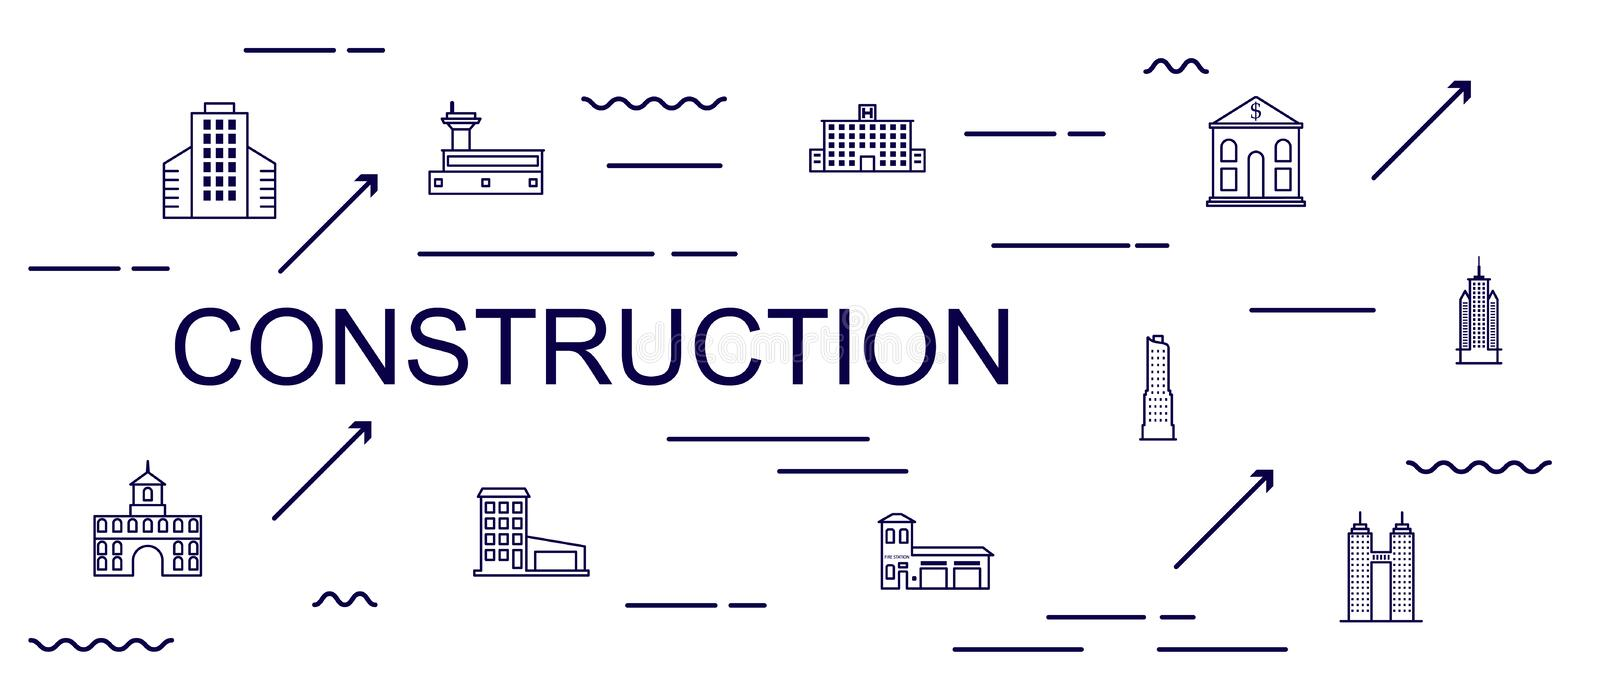 Concept of creating and building idea / Building production line / manufacturing and machine / typography. Construction vector illustration